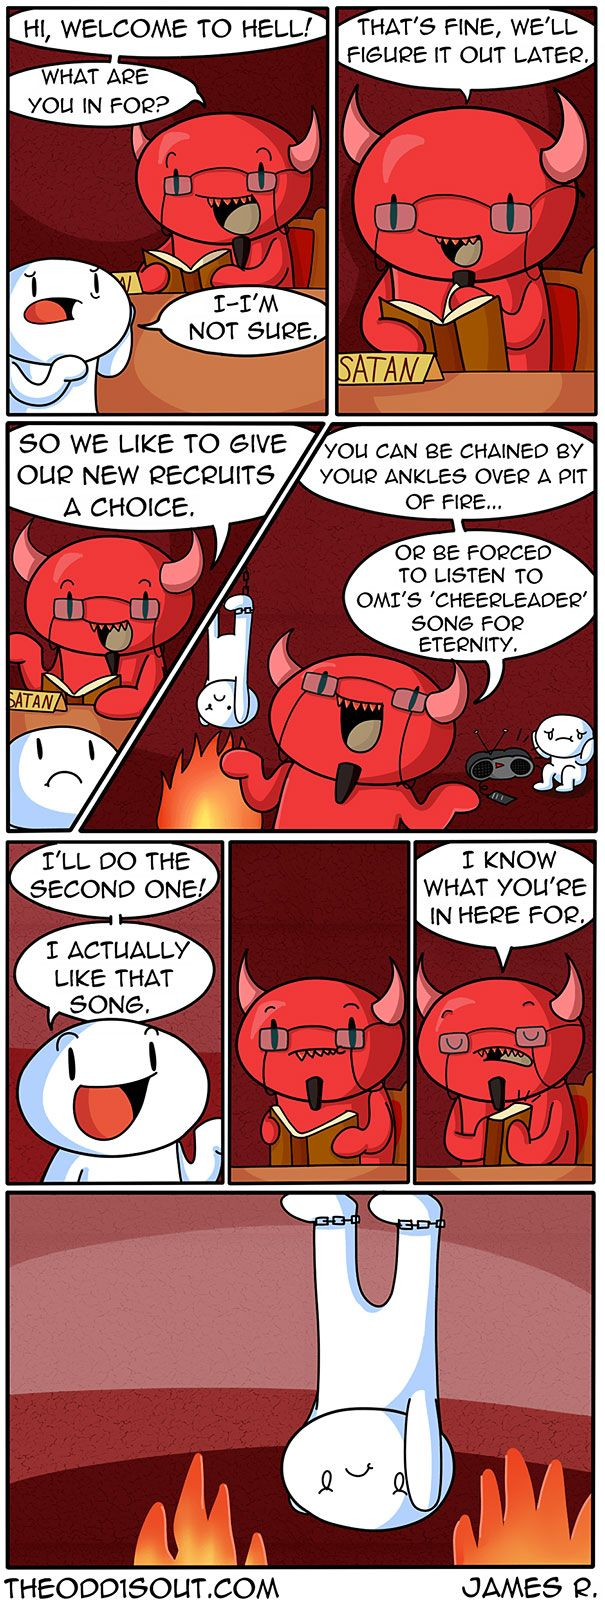 Photo of These 275 Funny Comics By Theodd1sout Have The Most Unexpected Endings